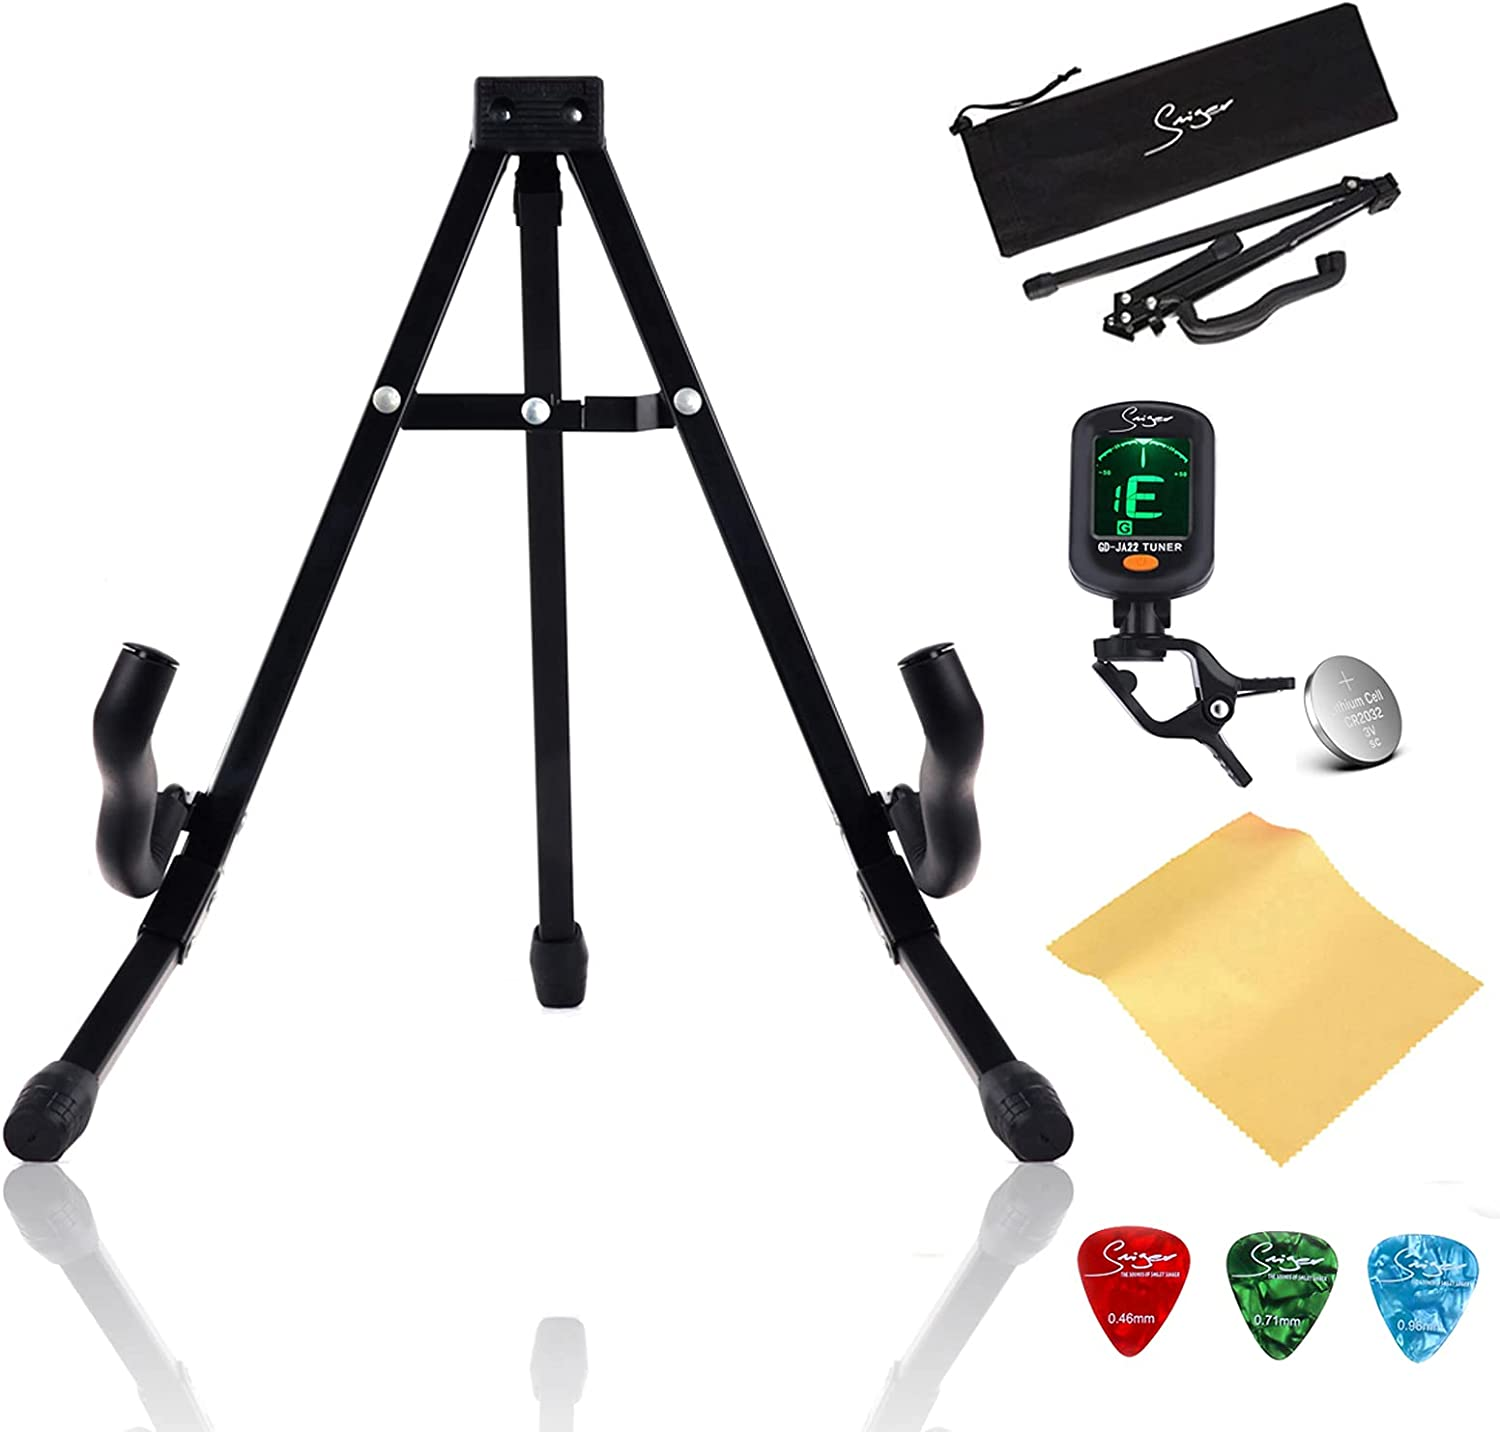 Extremely Foldable A Frame Quantity limited Guitar Gu Industry No. 1 Stand Electric for Acoustic